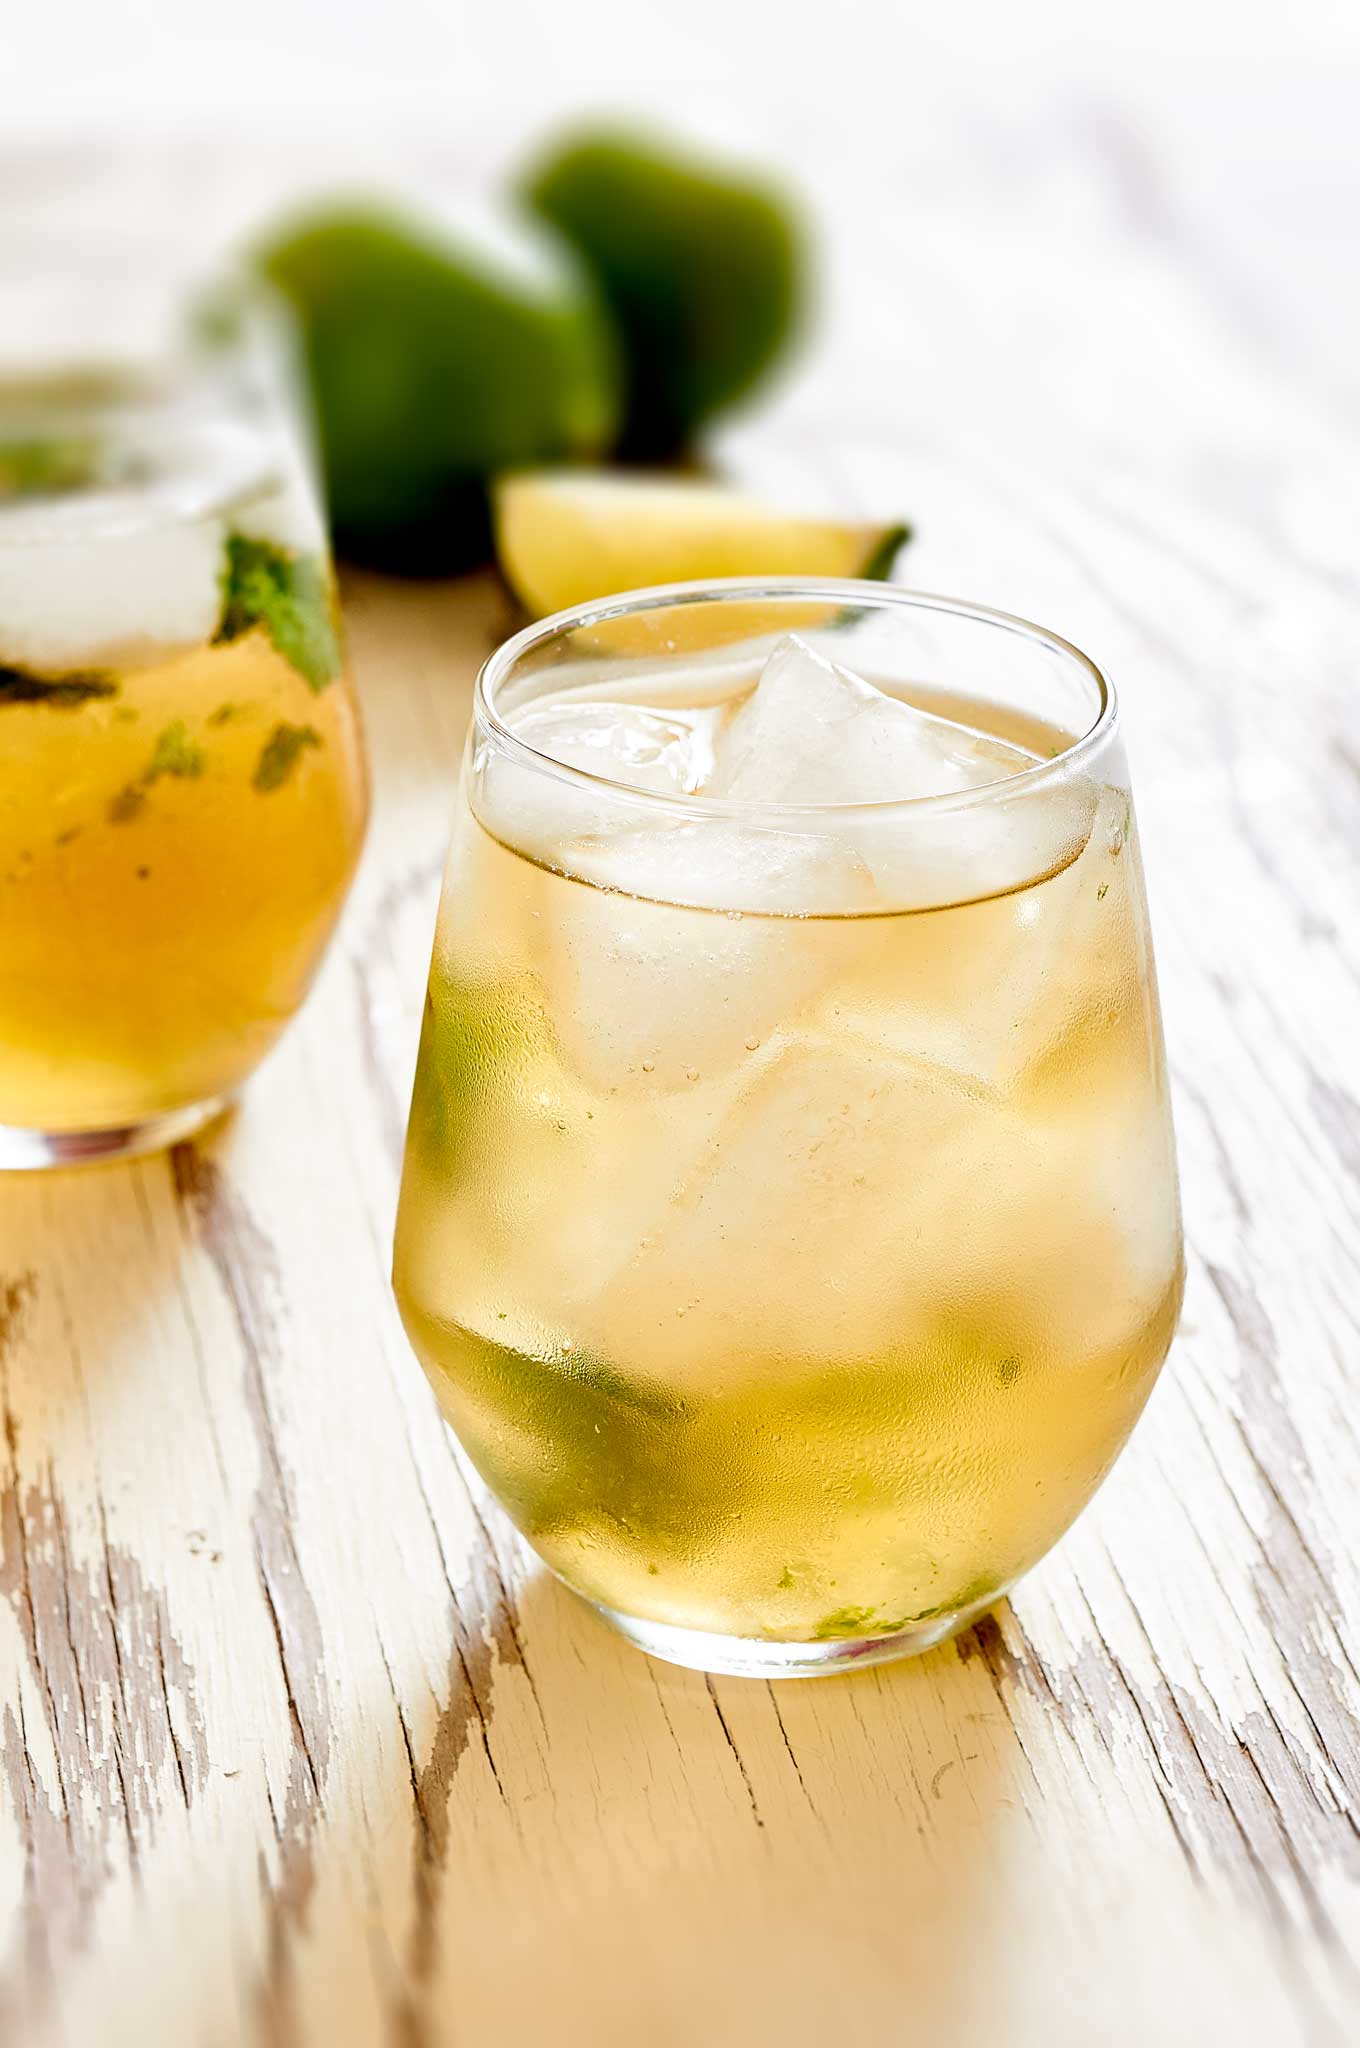 With muddled basil, bourbon and ginger beer, the Basil Kentucky Mule has got a nice kick to it. | ibakeheshoots.com